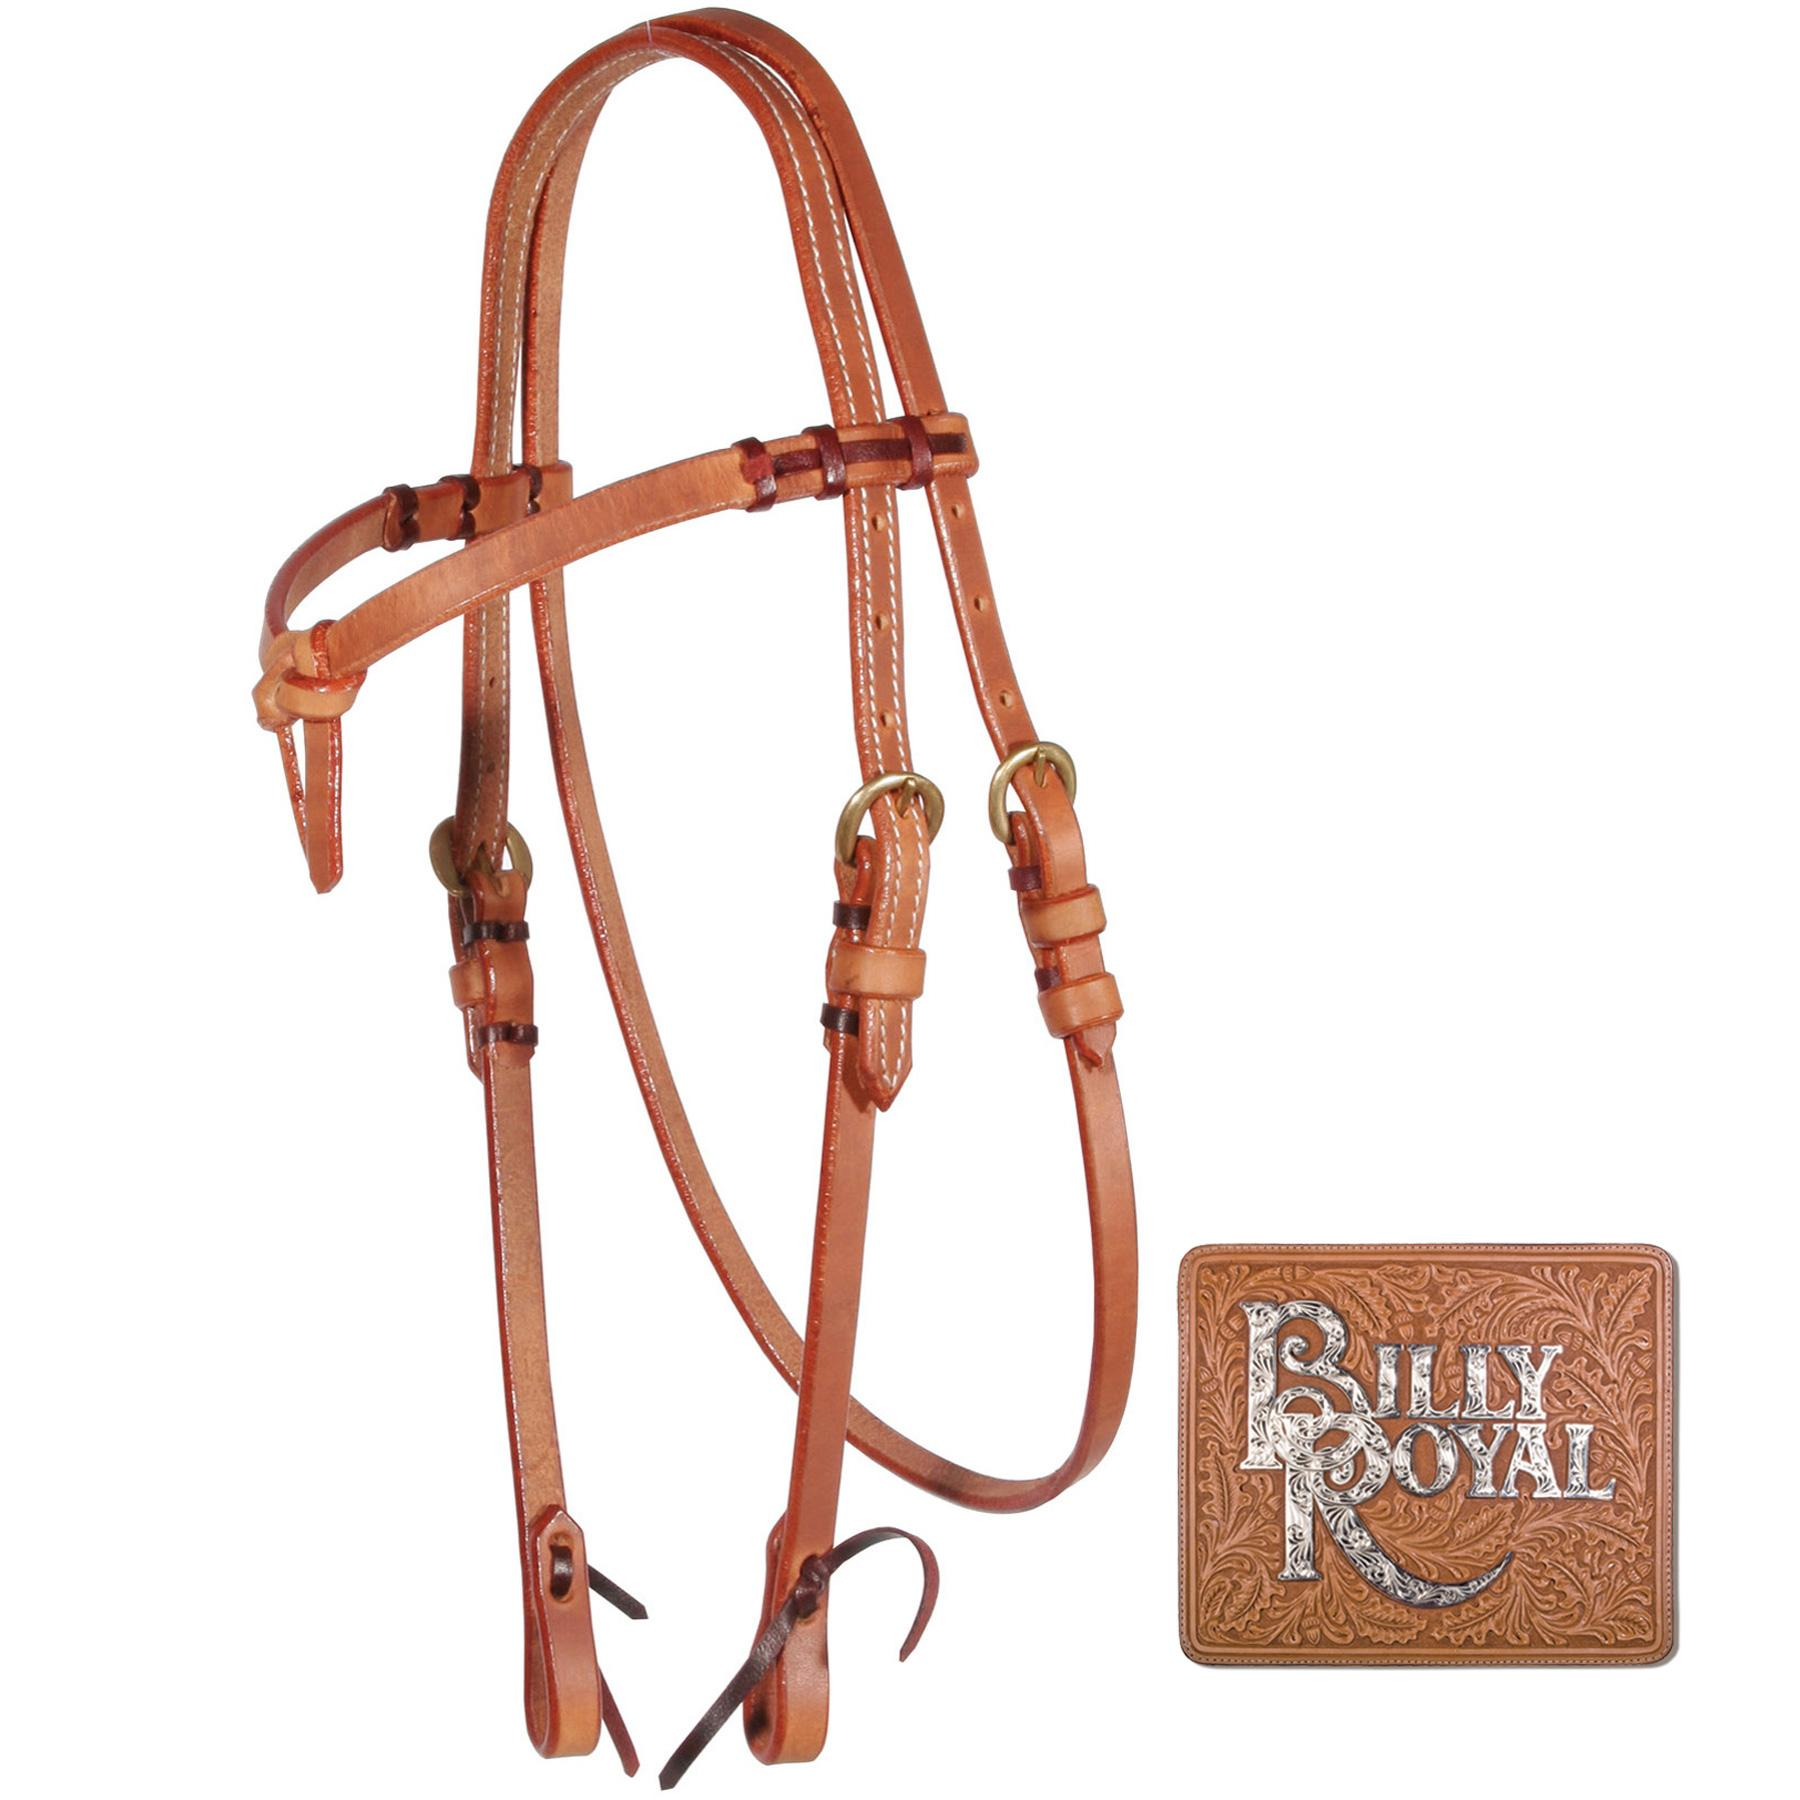 Billy Royal® Harness Leather Futurity Browband Bridle